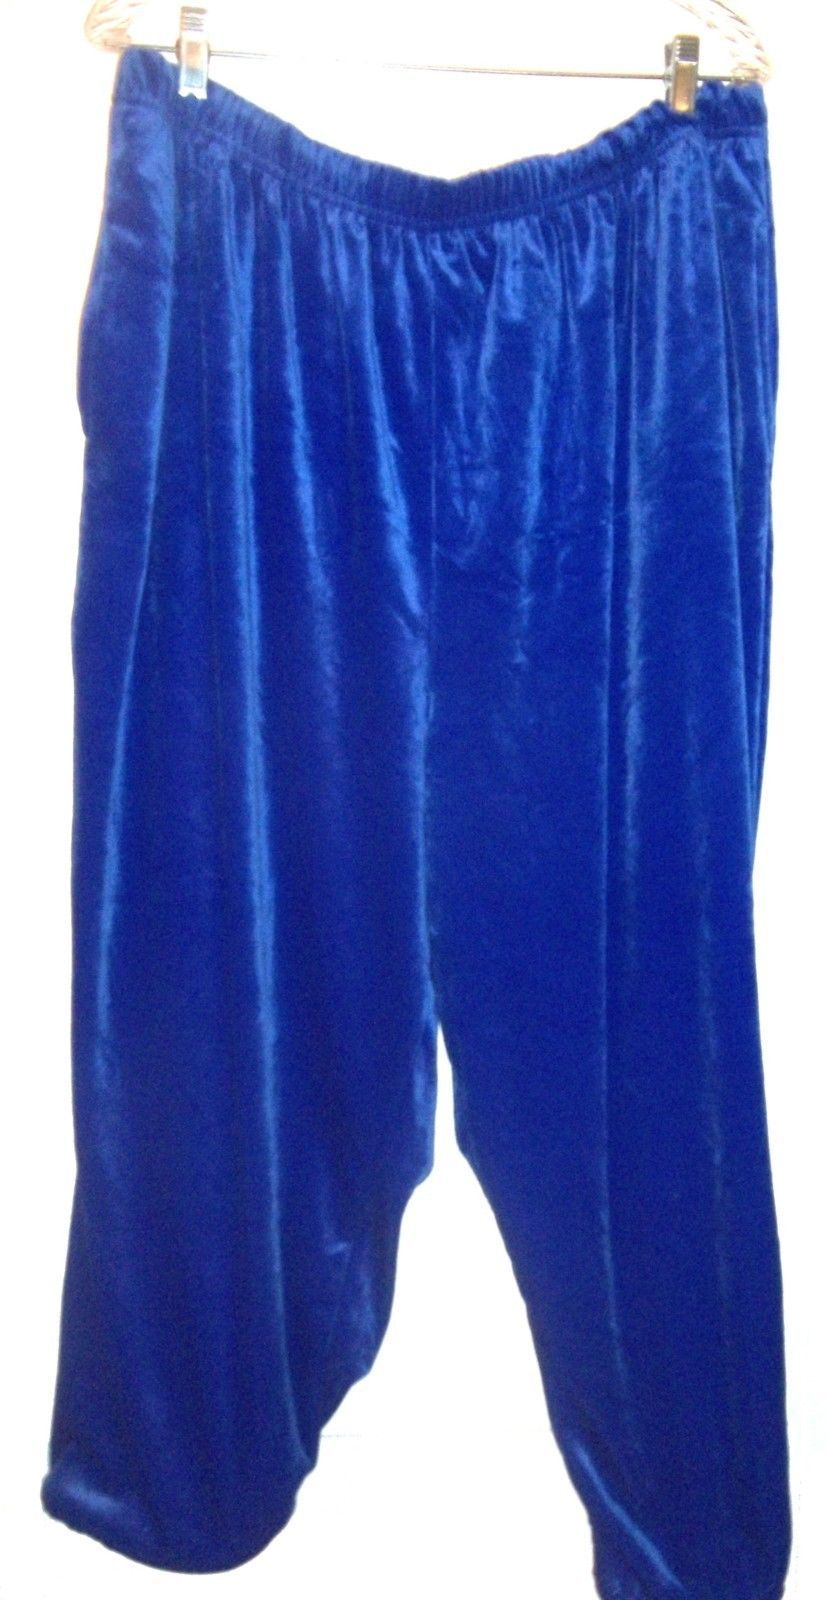 Plus Size 2X - Jaclyn Smith Royal Blue Velvet Capri Pants w/Rolled Bottoms